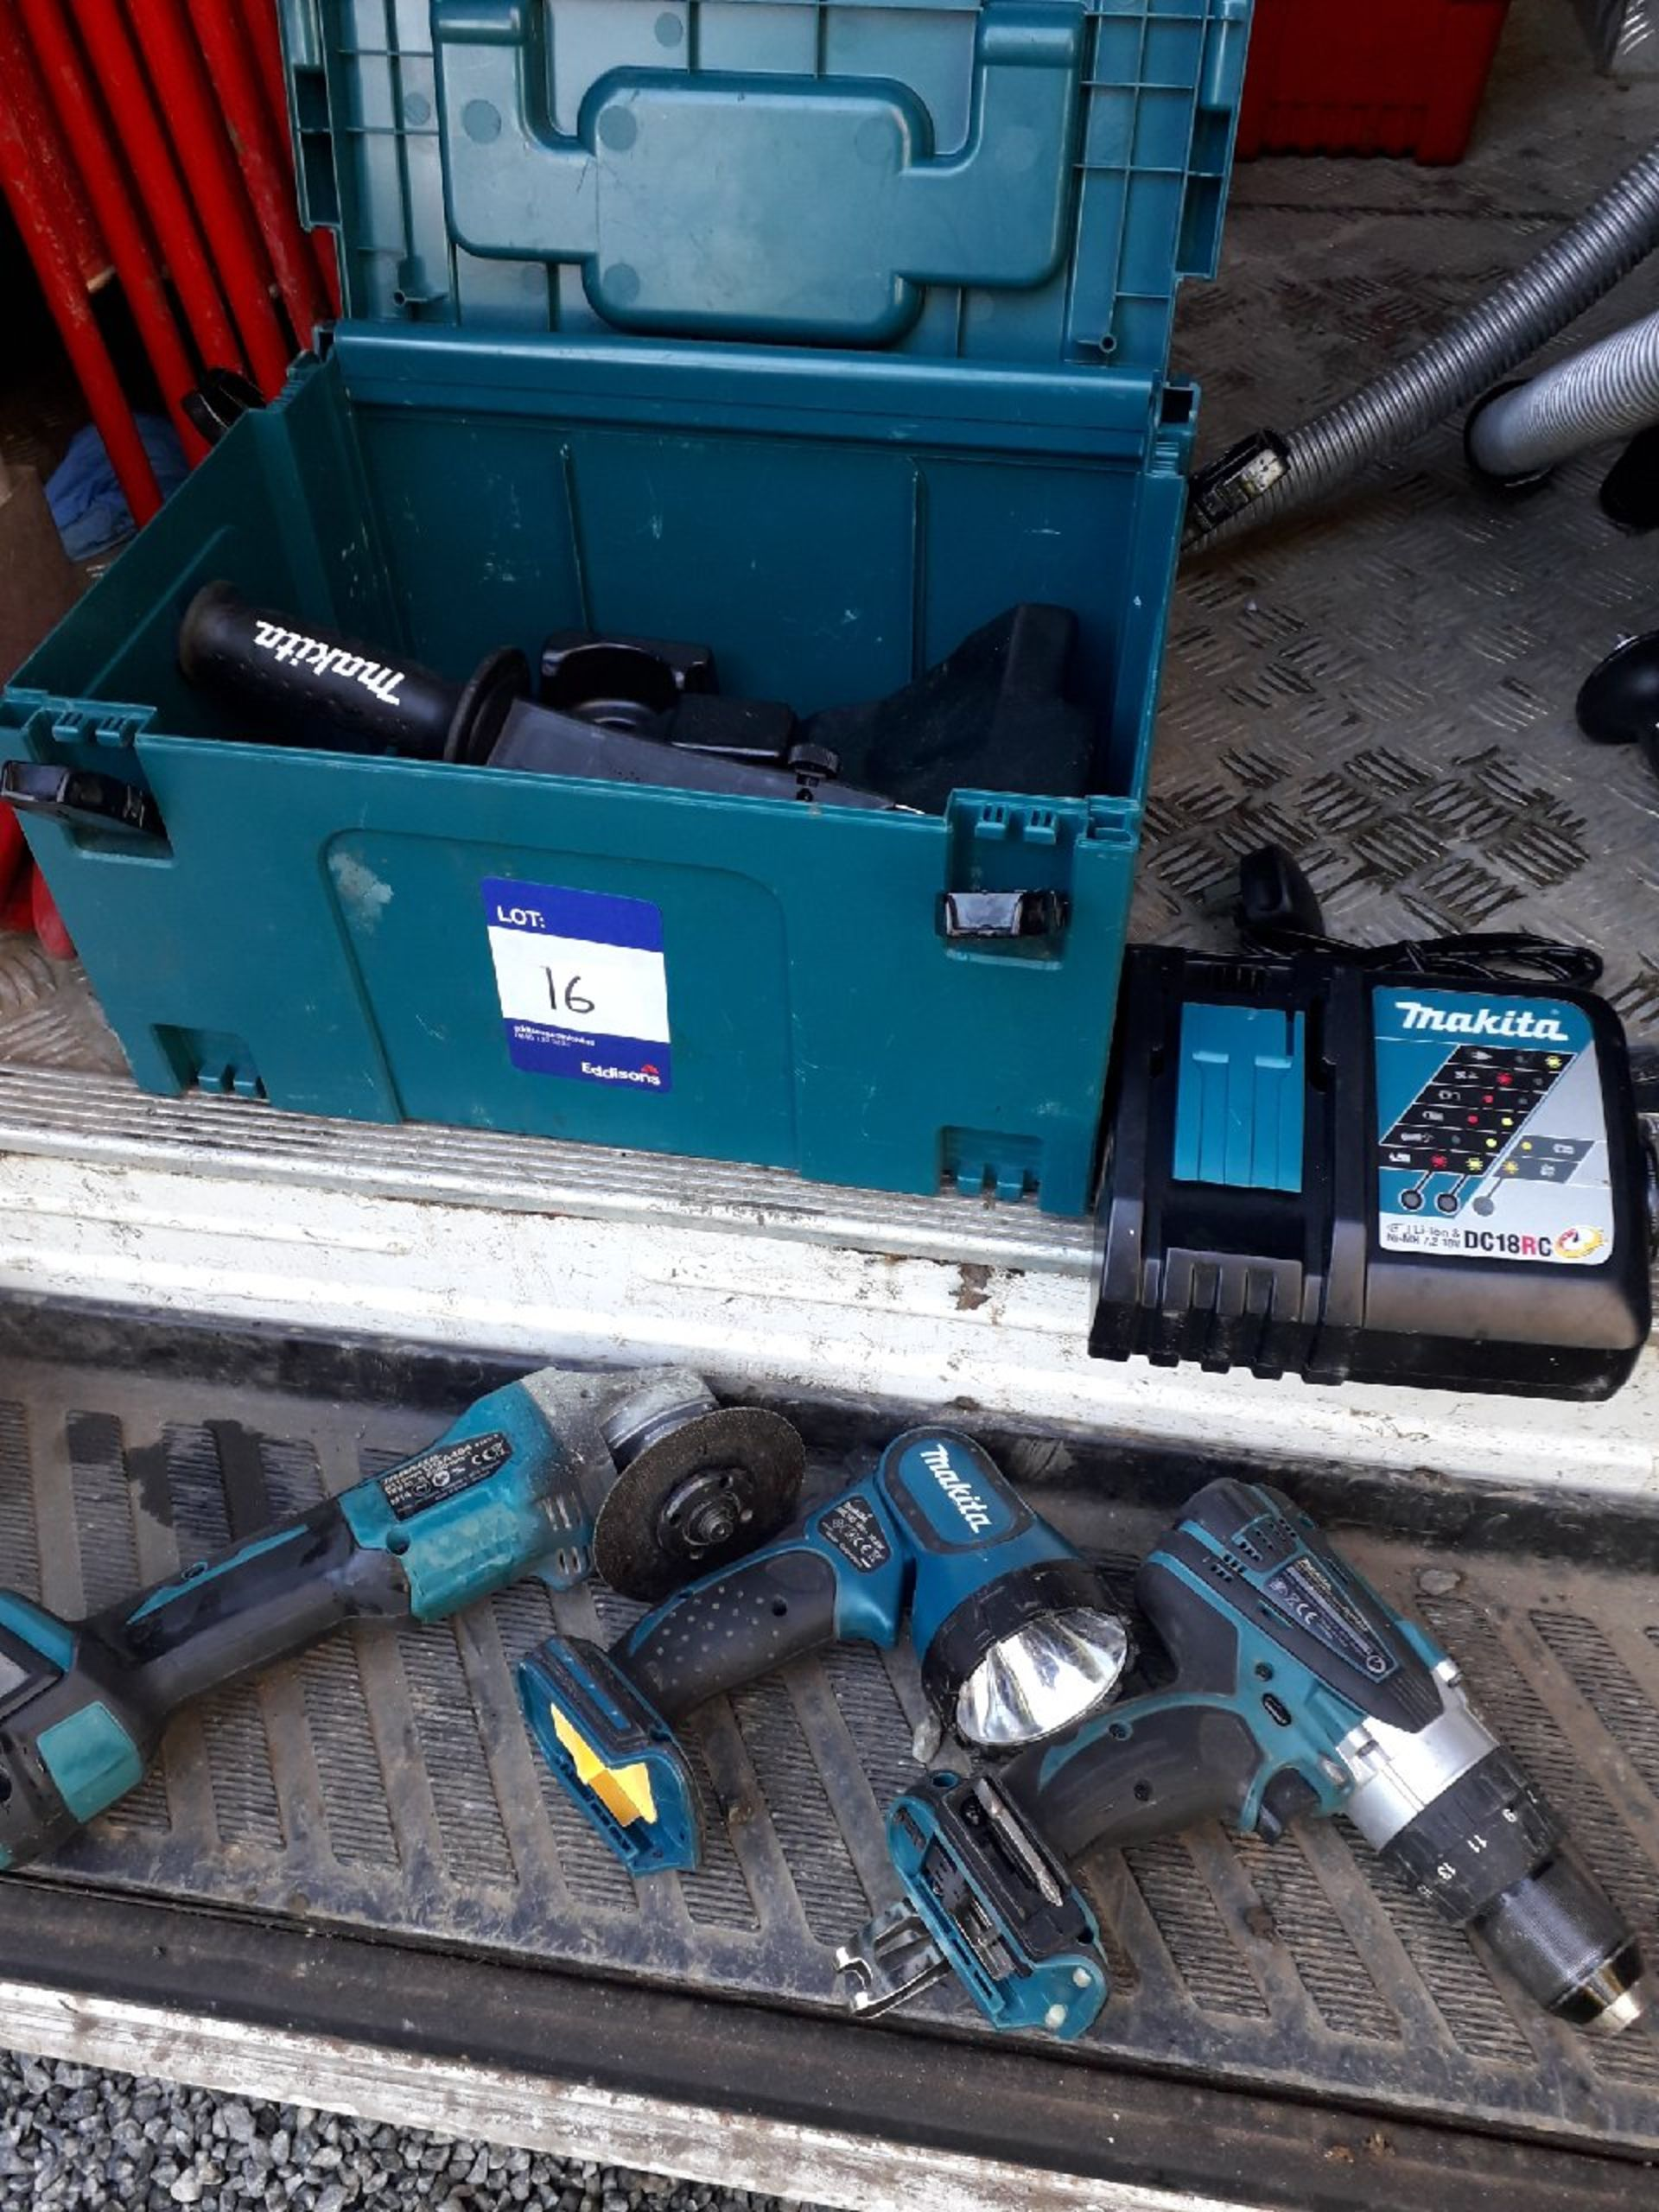 Lot 16 - Cordless Makita tools consisting of Makita fast charger, Makita DHP458 cordless hammer drill, Makita